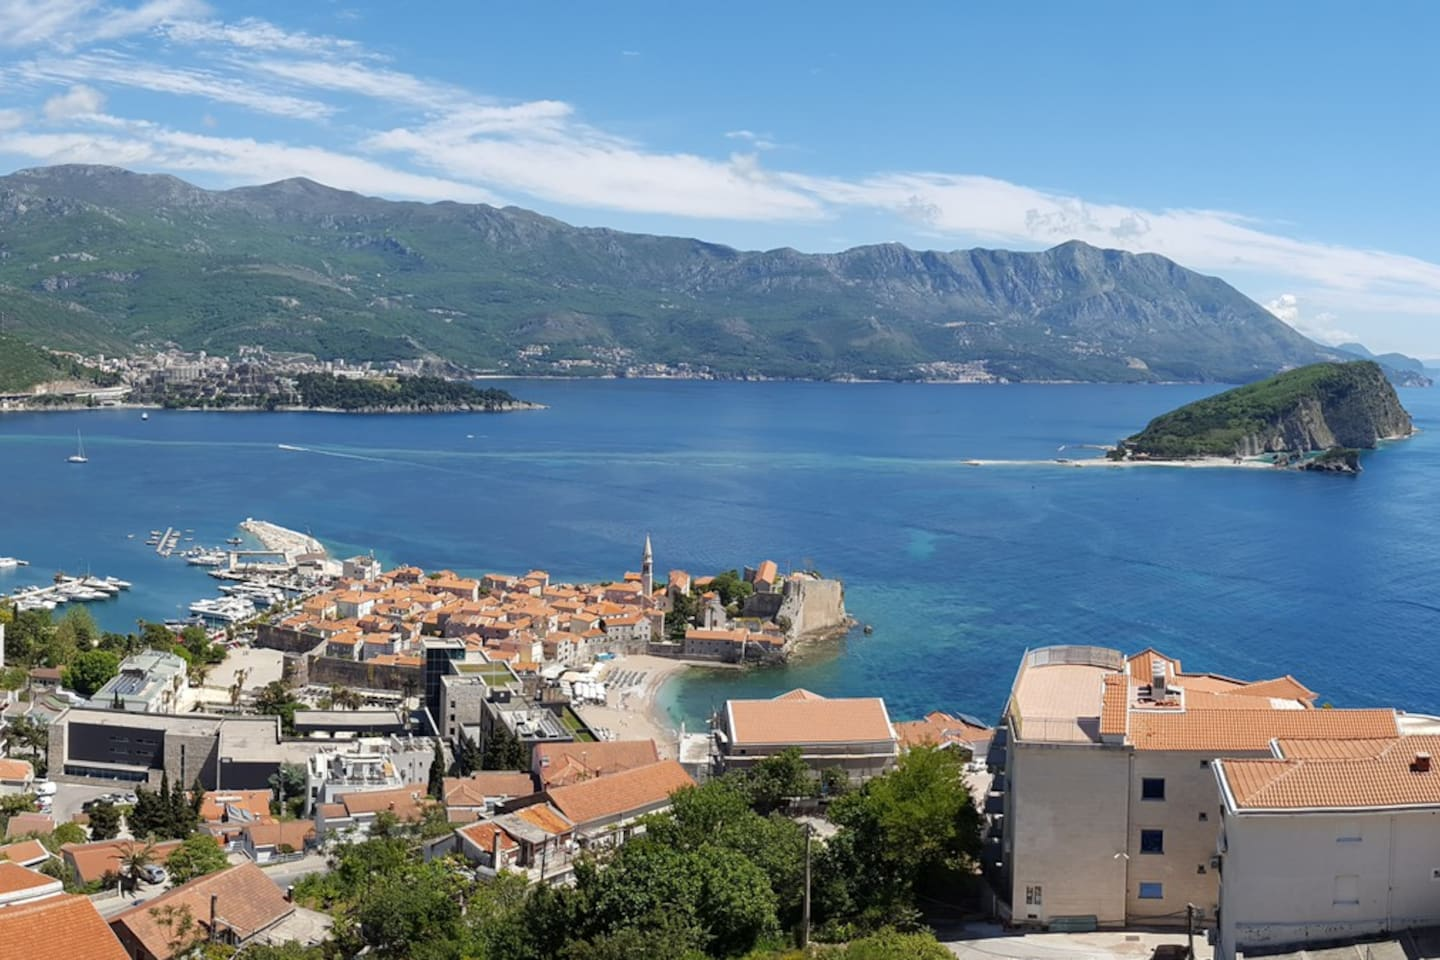 View of Budva's old town and harbour